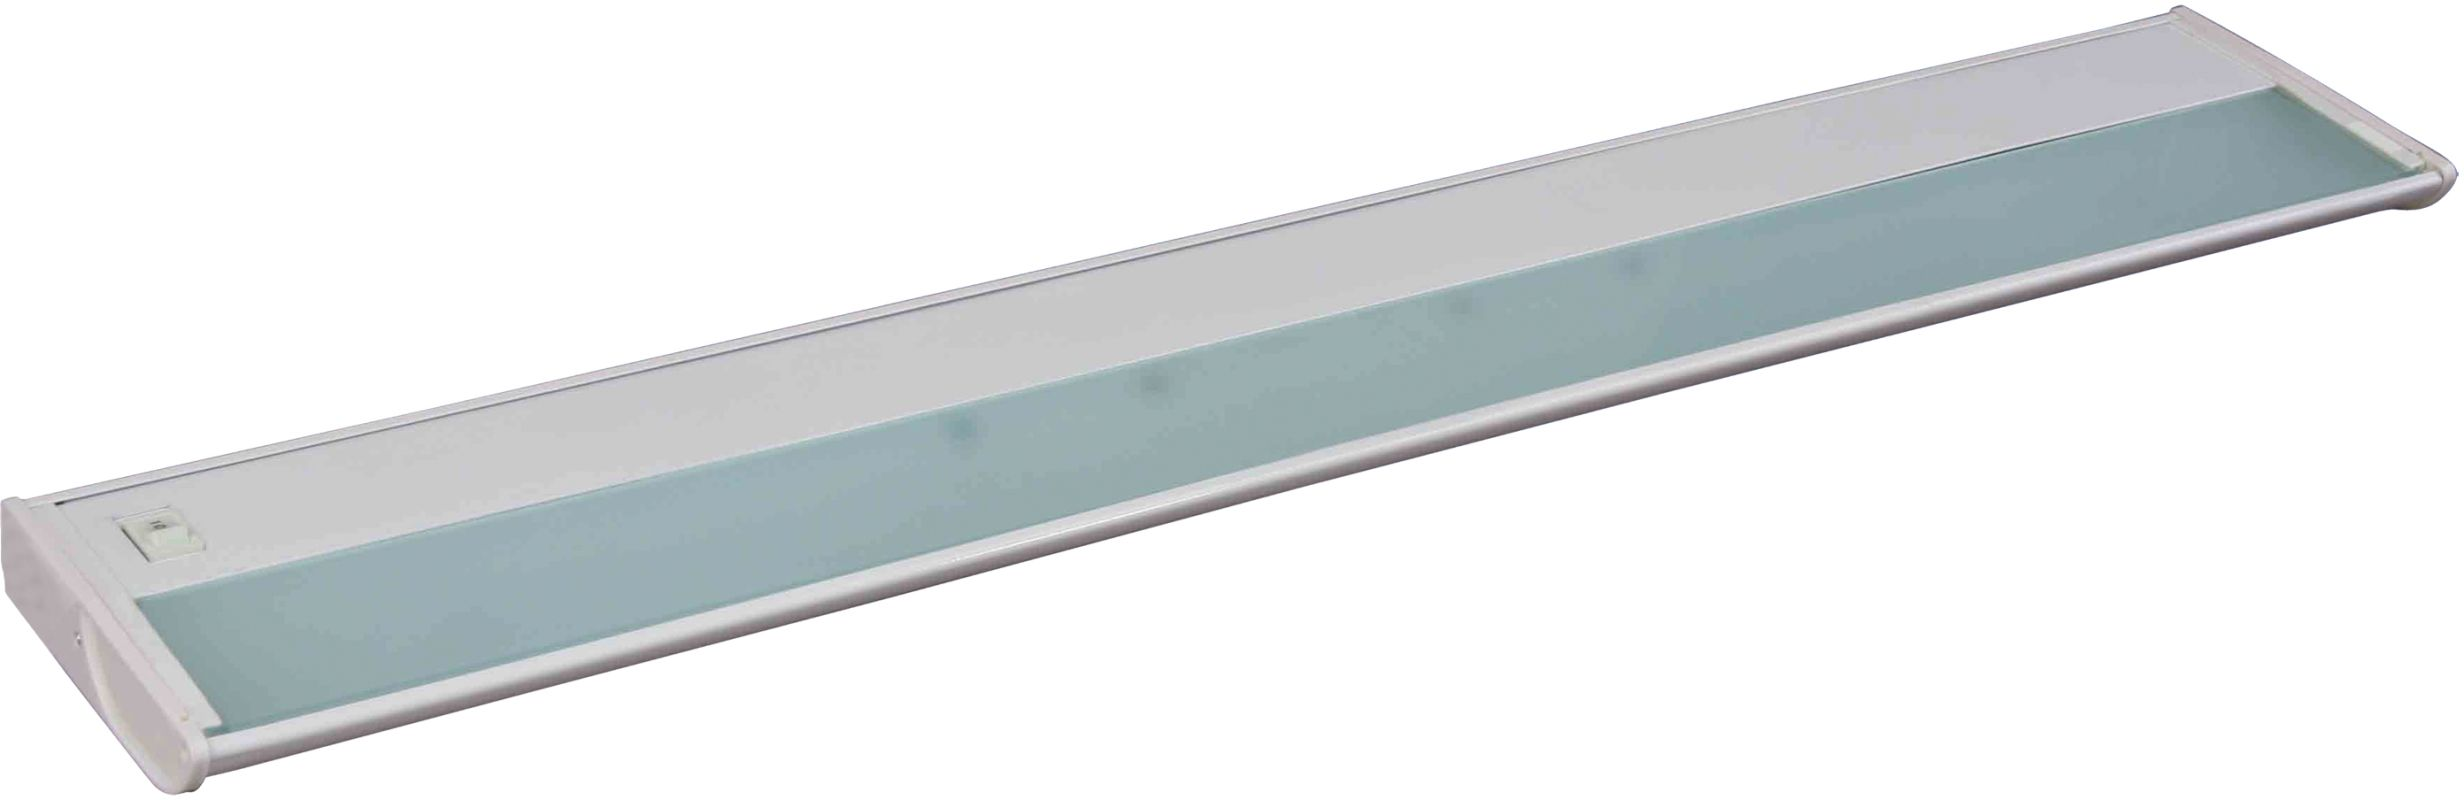 "Maxim 87833 30"" 4 Light Xenon Under Cabinet Light from the CounterMax"